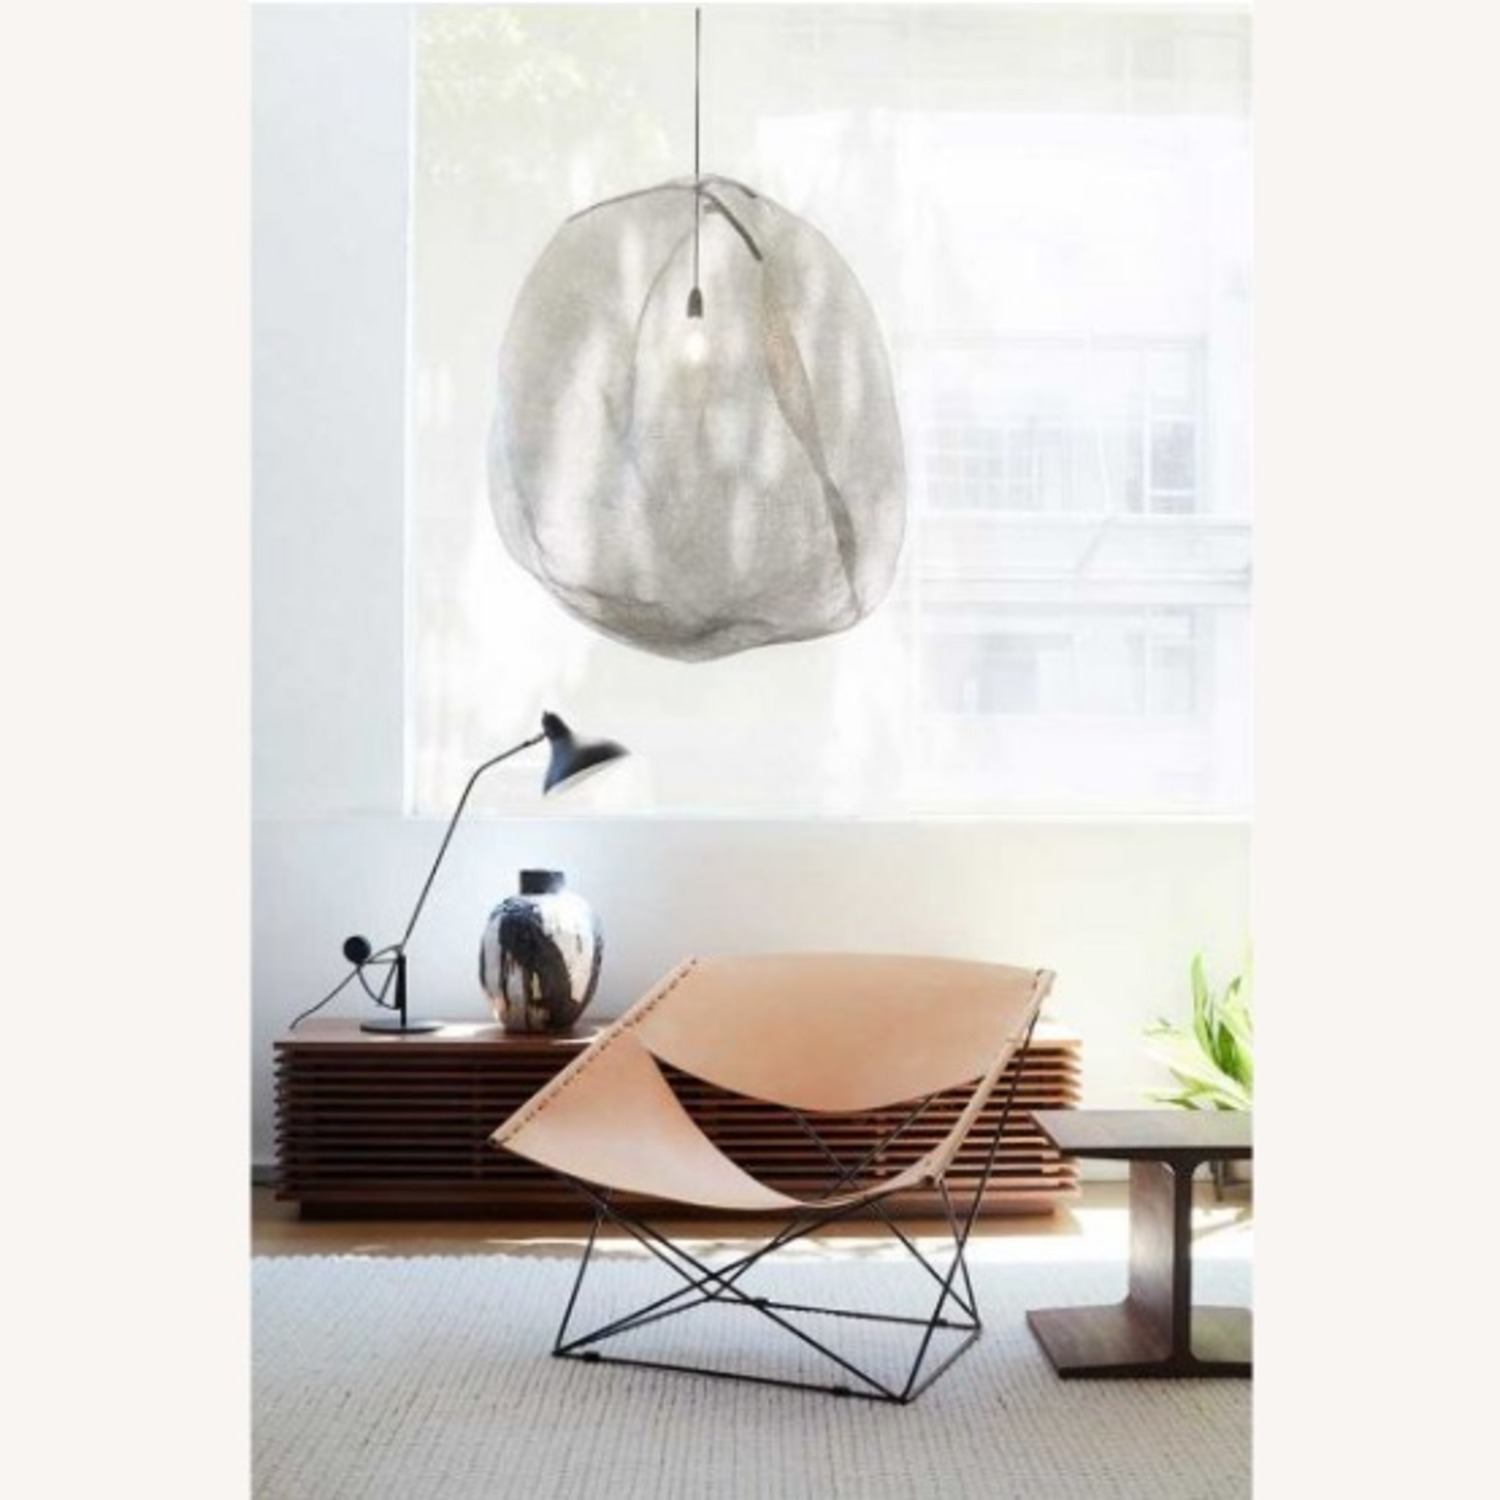 Kute Sphere Light by Atmosphere d'Ailleurs